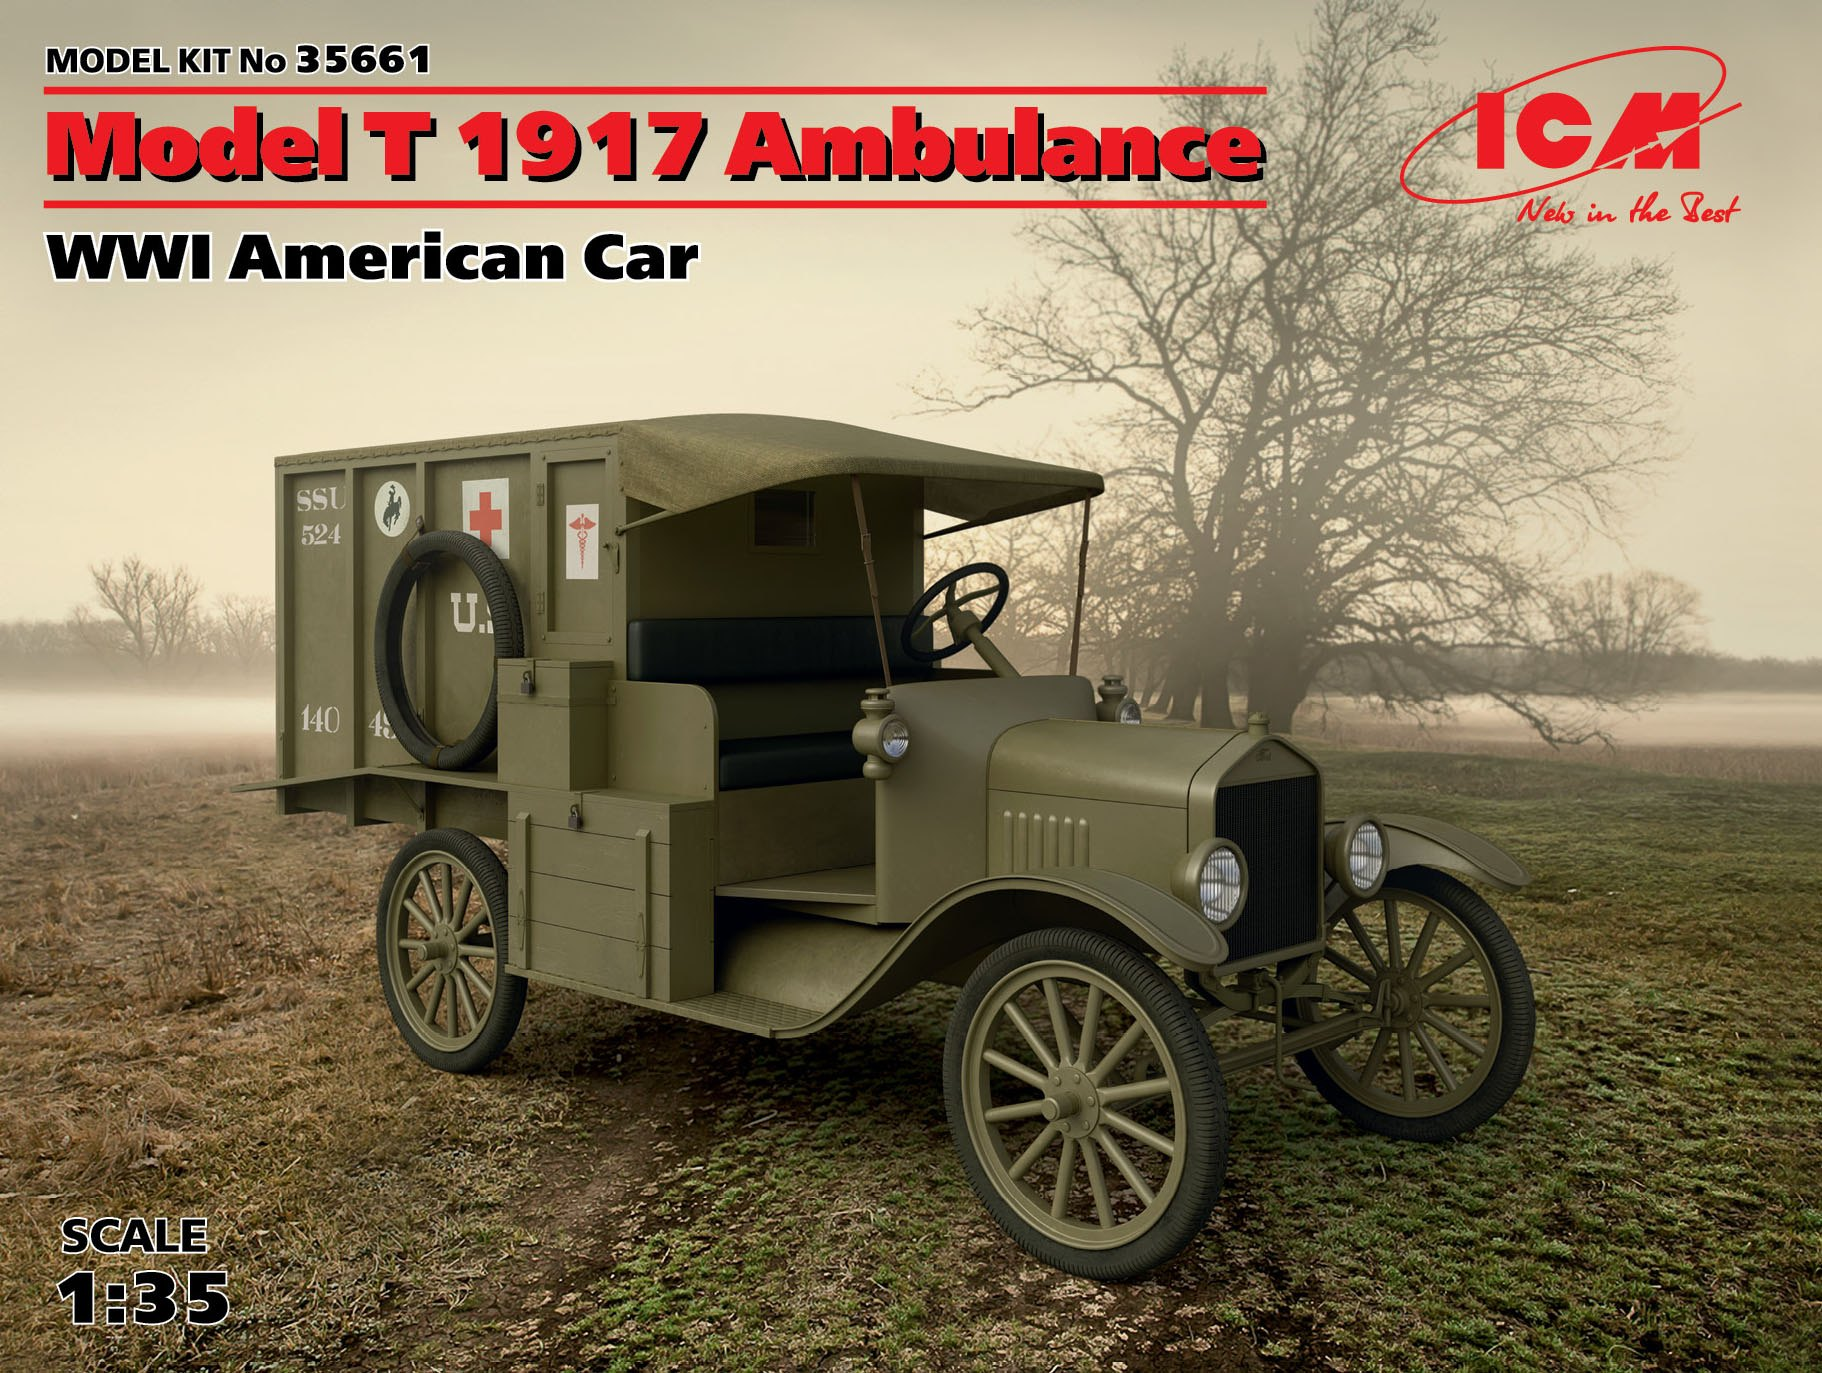 ICM Model T 1917 Ambulance, WWI American Car